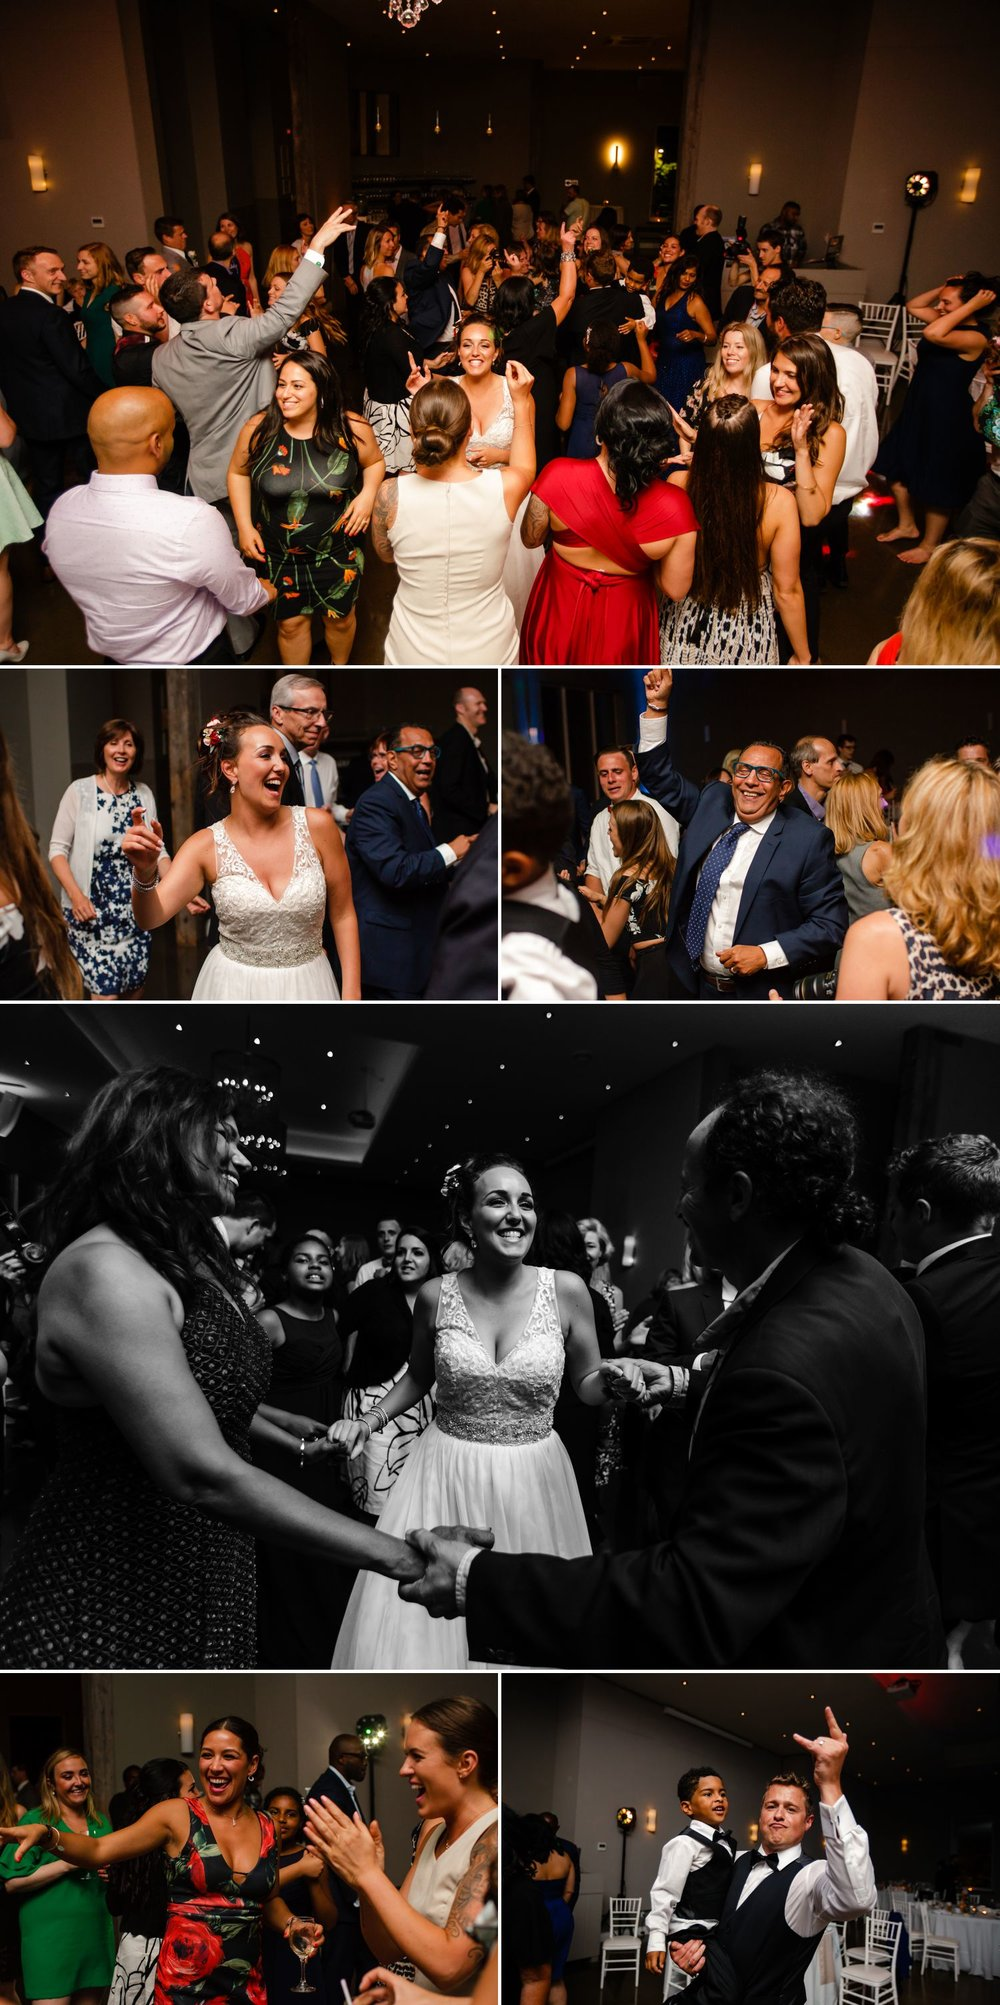 The bride and groom dancing with their guests during their wedding reception at Le Belvedere